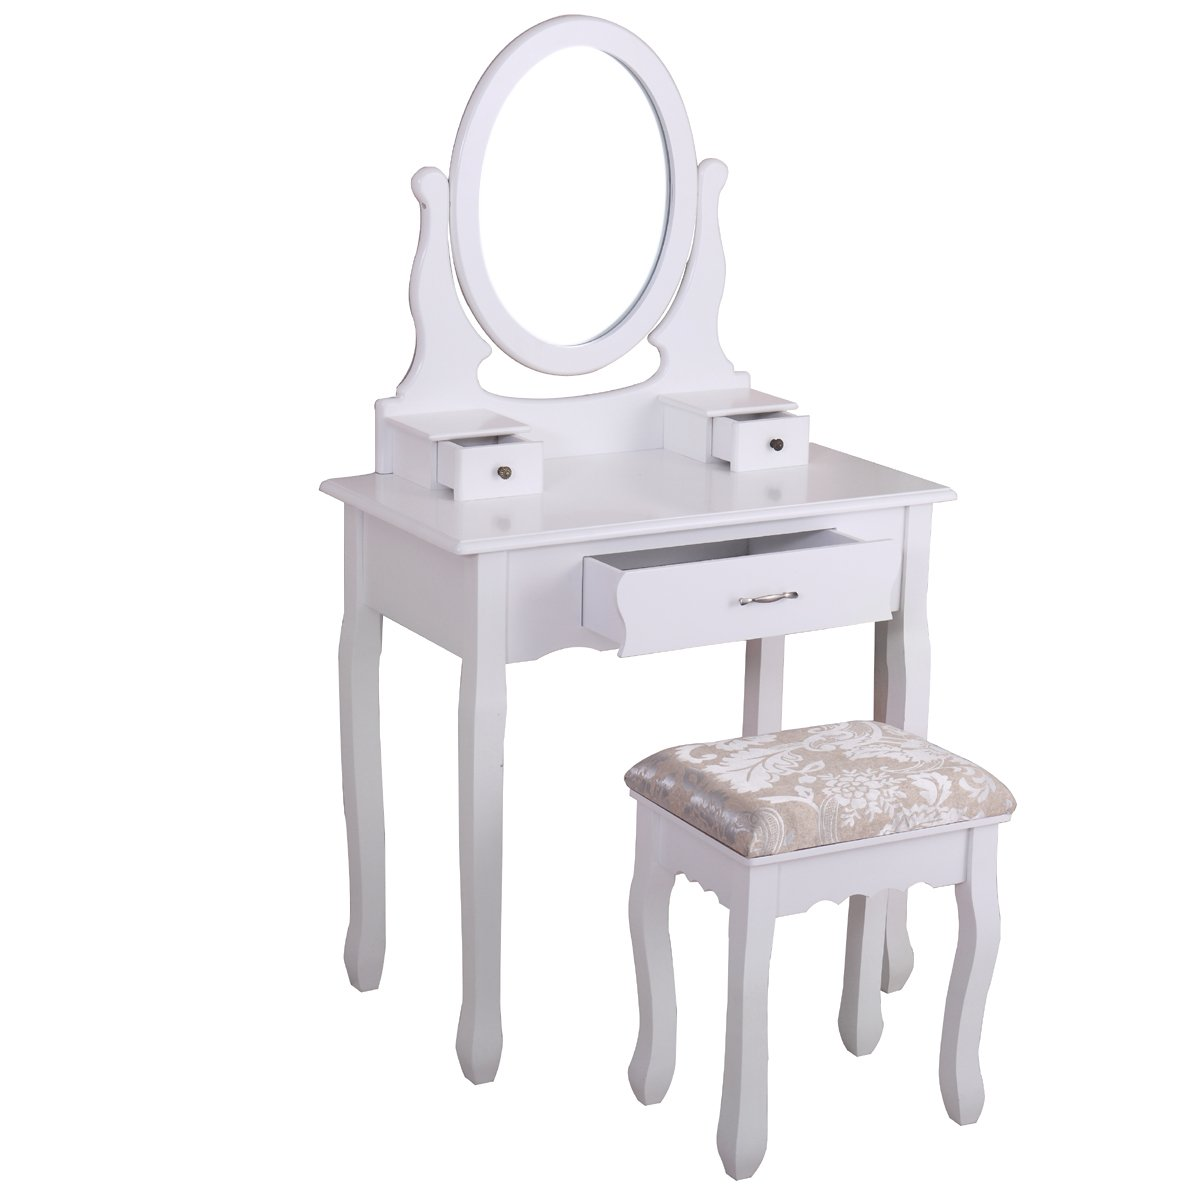 Winmart Vanity Wood Makeup Dressing Table Stool Set Jewelry Desk bathroom with Drawer Mirror White